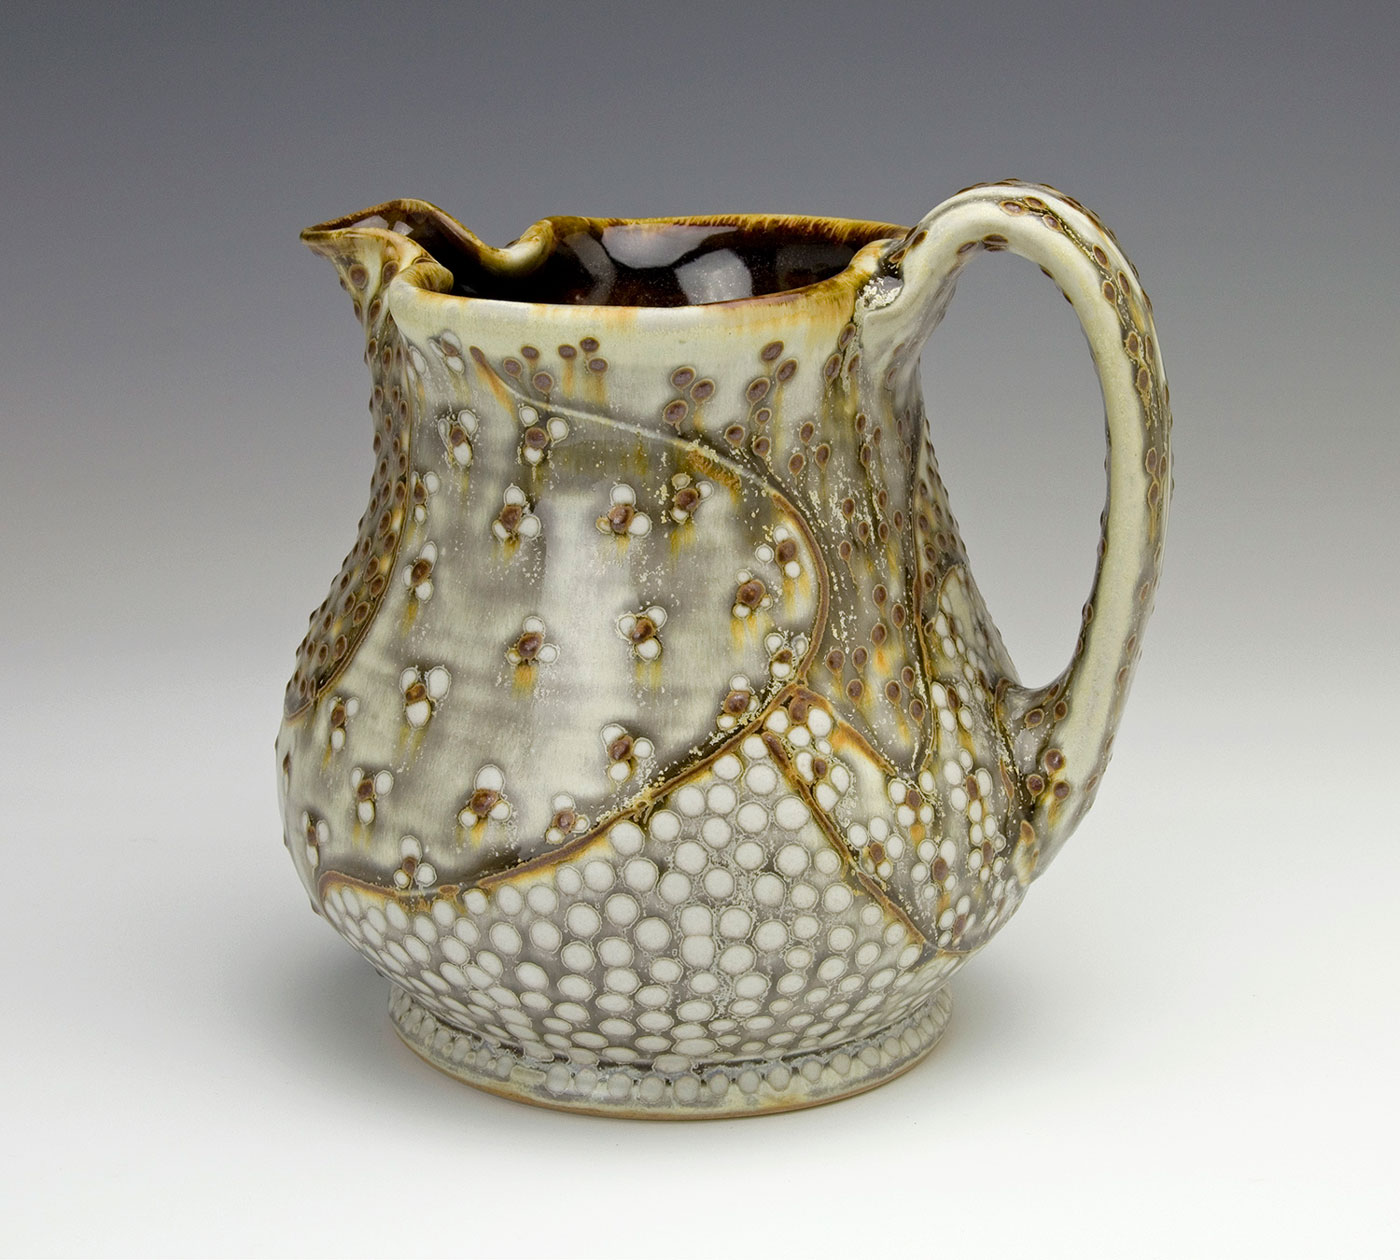 Pattern-Medley-Pitcher-Samantha-Henneke-Seagrove-Pottery-North-Carolina.jpg